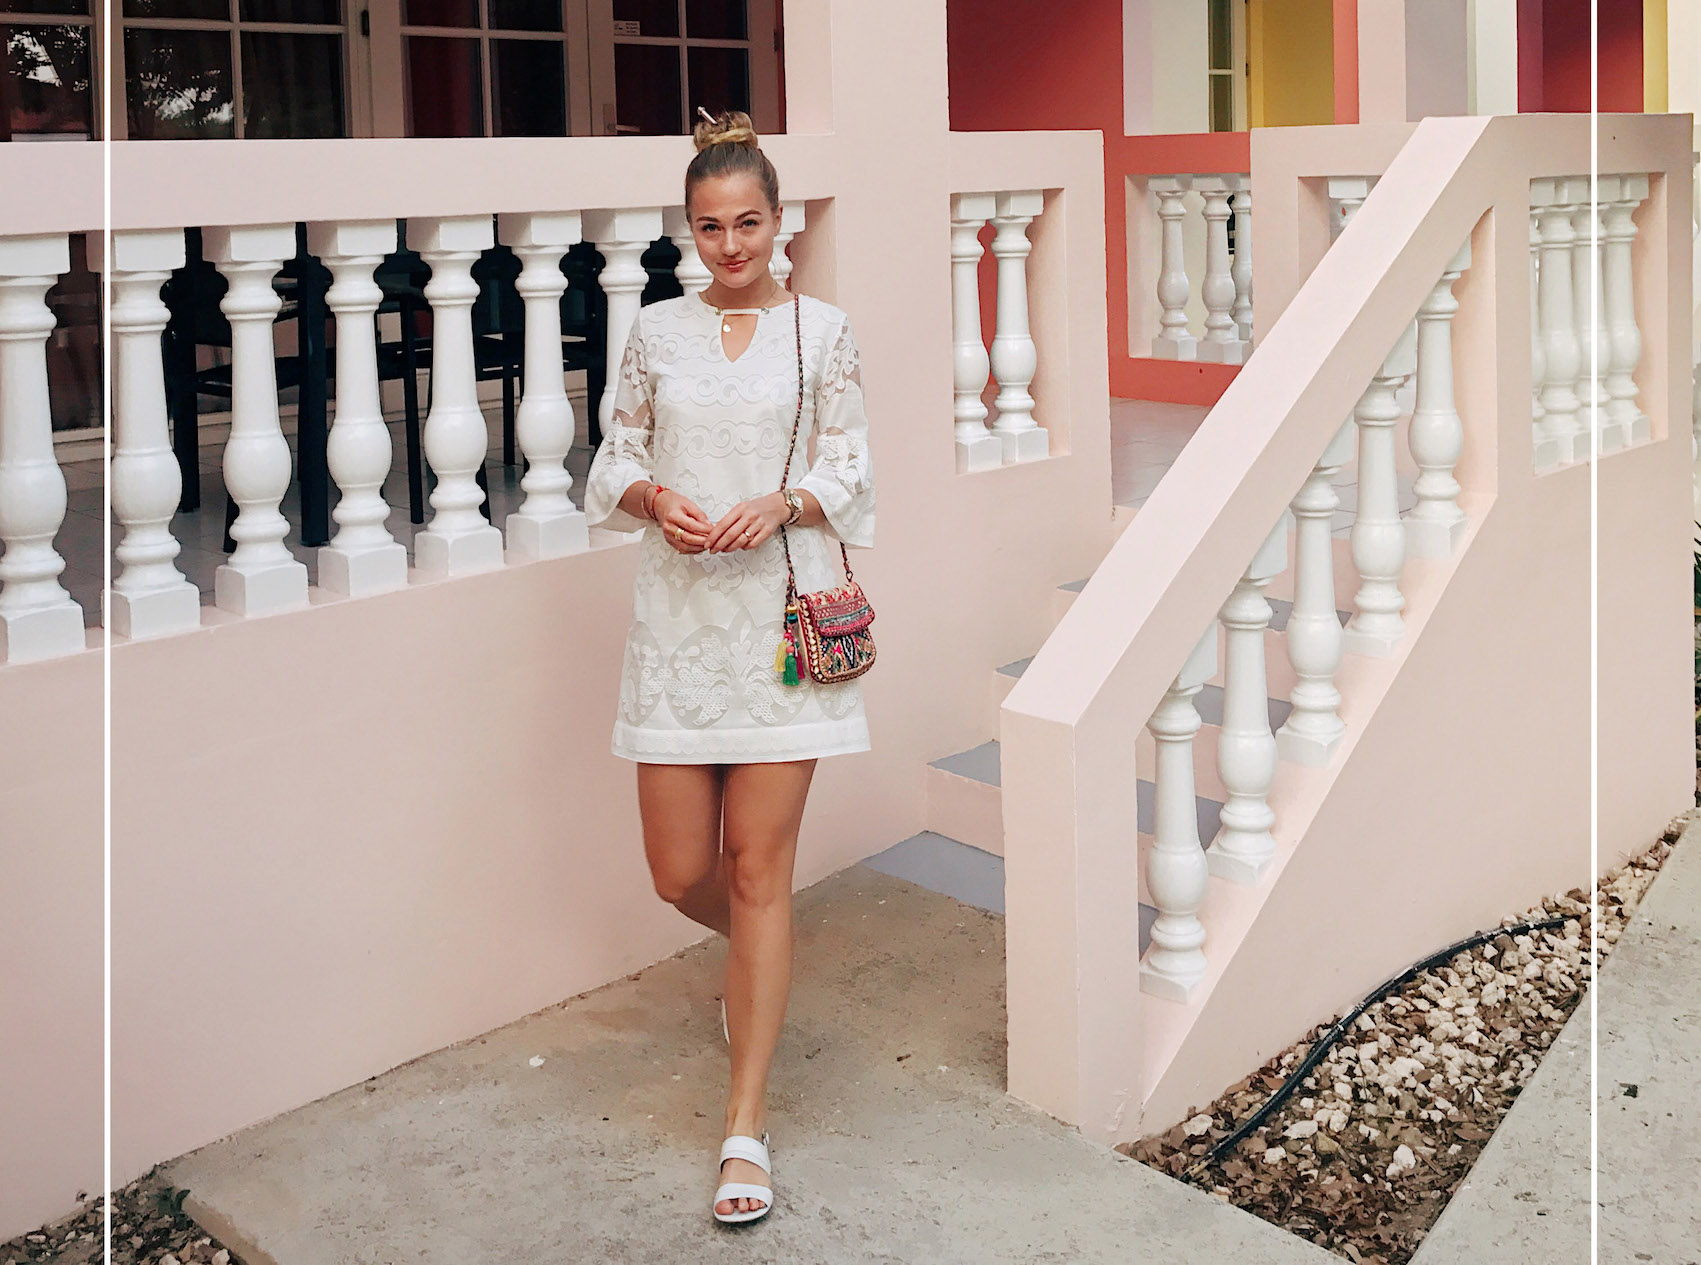 Floortjeloves, anna alcazar, shoesofprey, shoes of prey, all white, curaçao, Curacao, travel